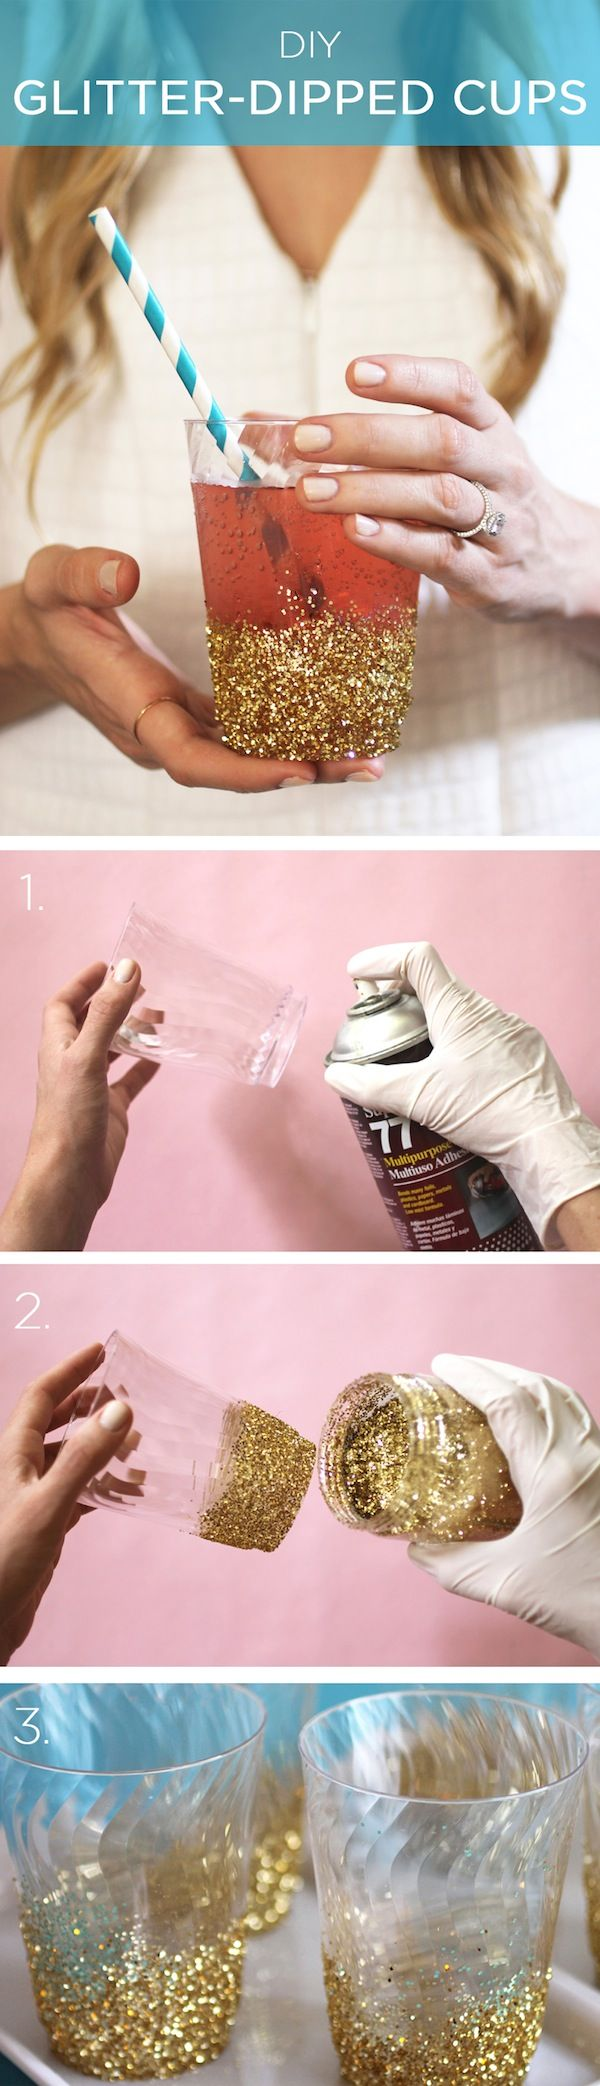 I want to do this with the plastic cups in our dorm!